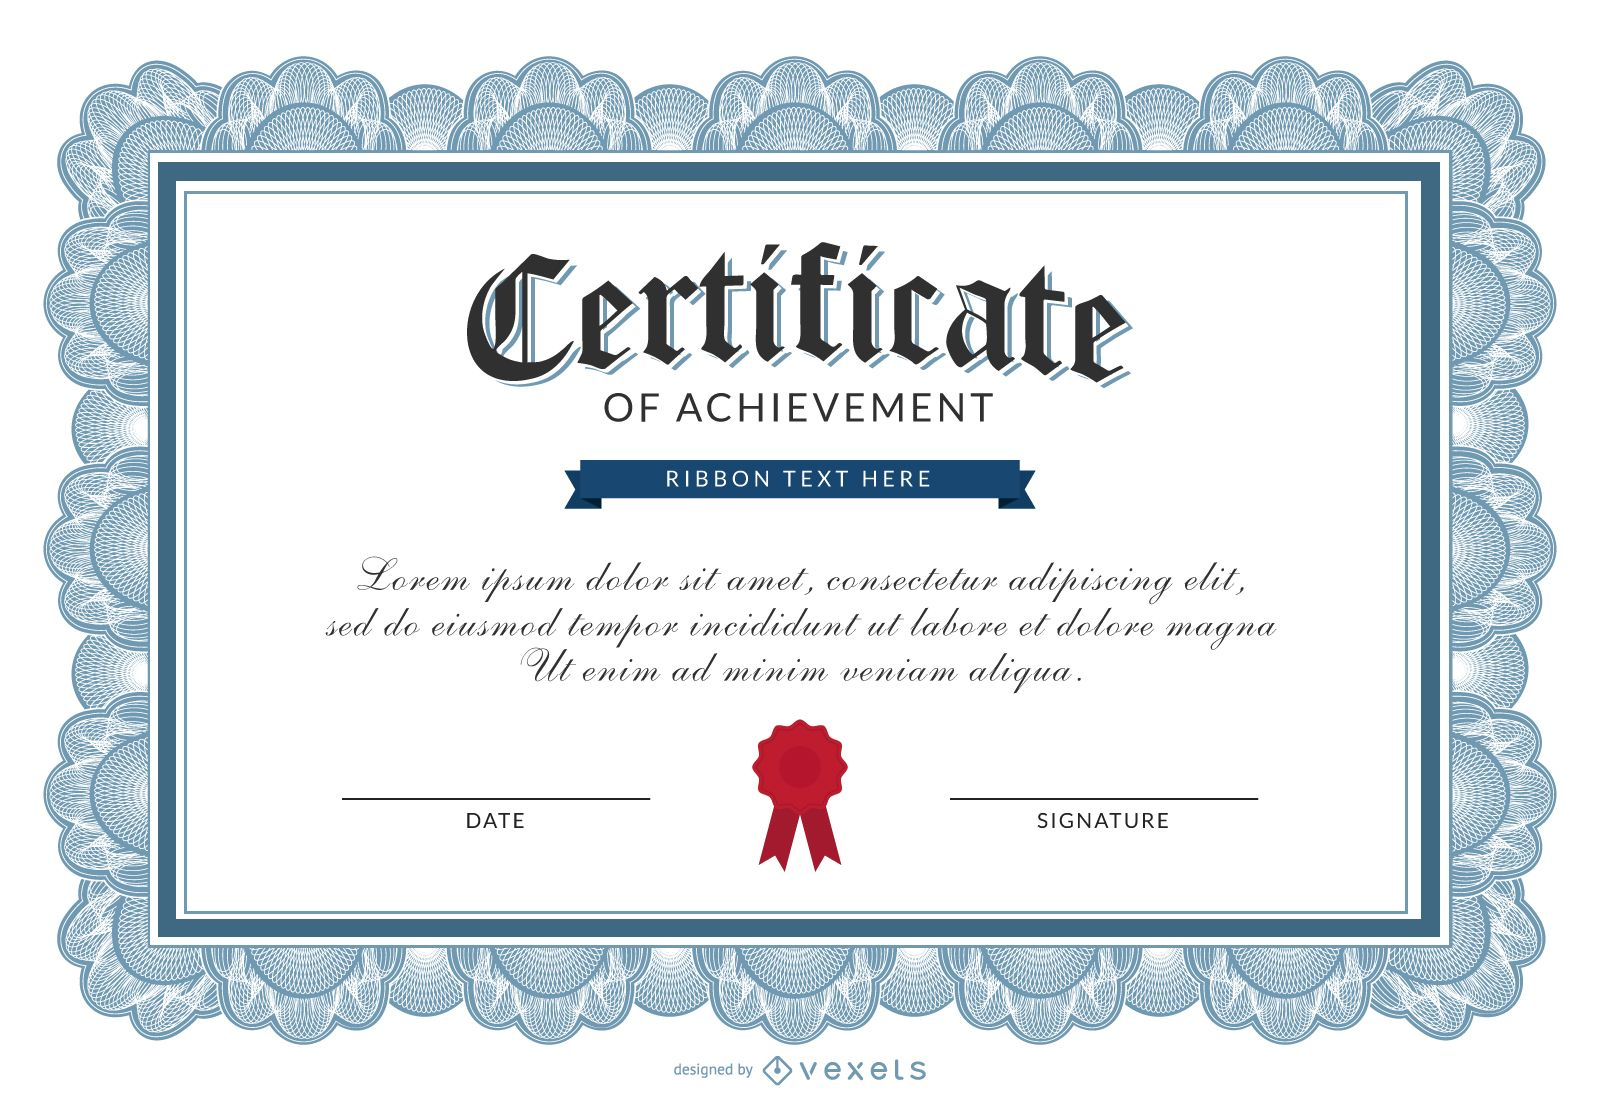 Certificate Of Achievement Template. Download Large Image 1600x1100px.  License Image; User  Certificate Of Achievement Template